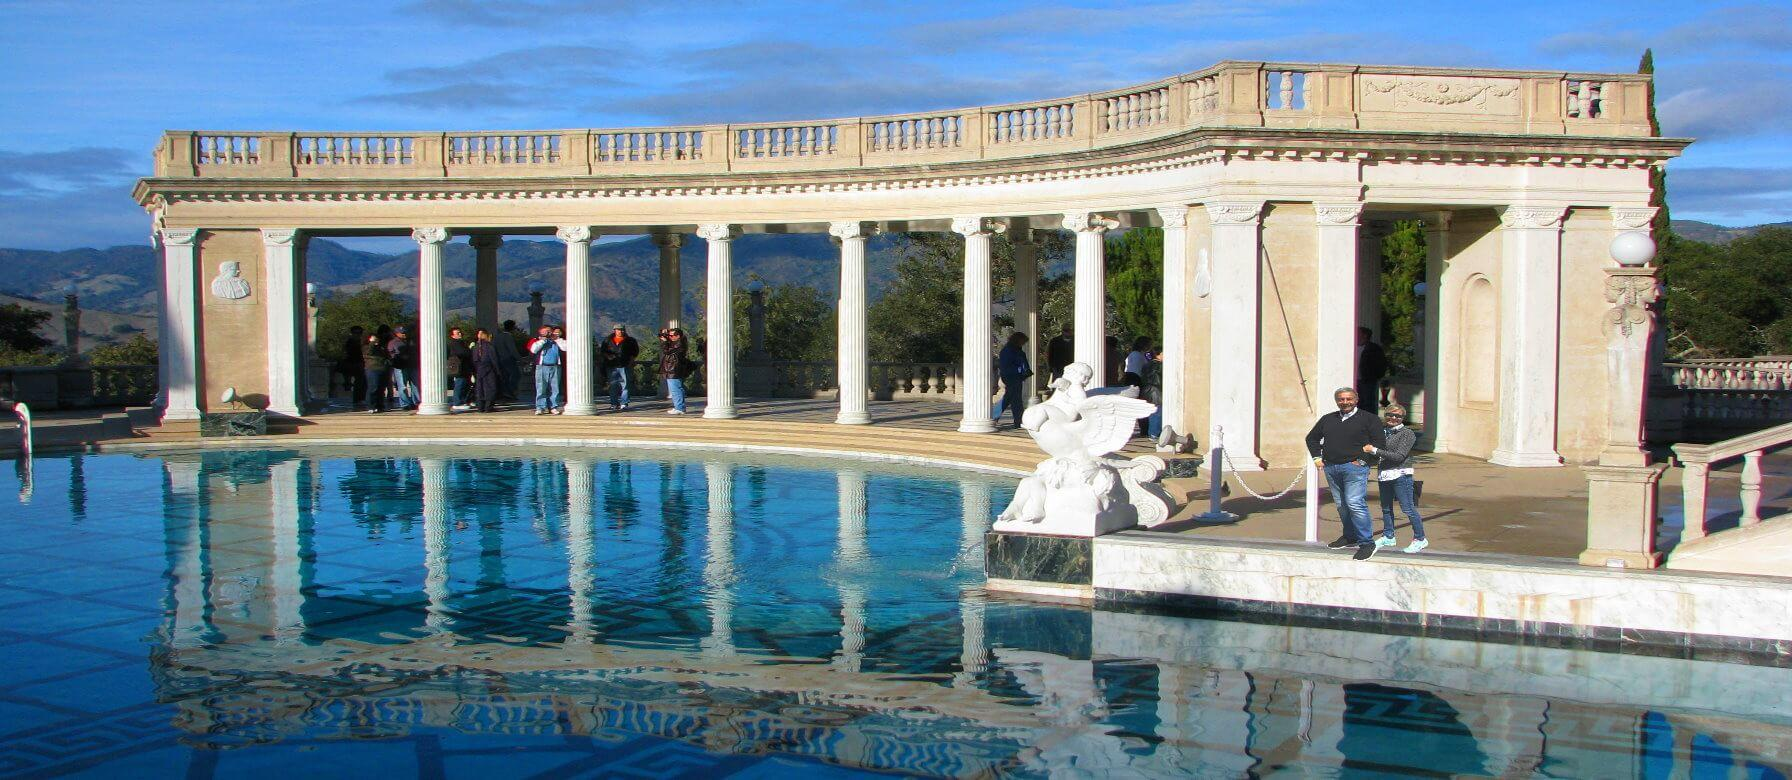 Hearst-Castle-Neptune-Pool-Art-Castle-Tours(1)